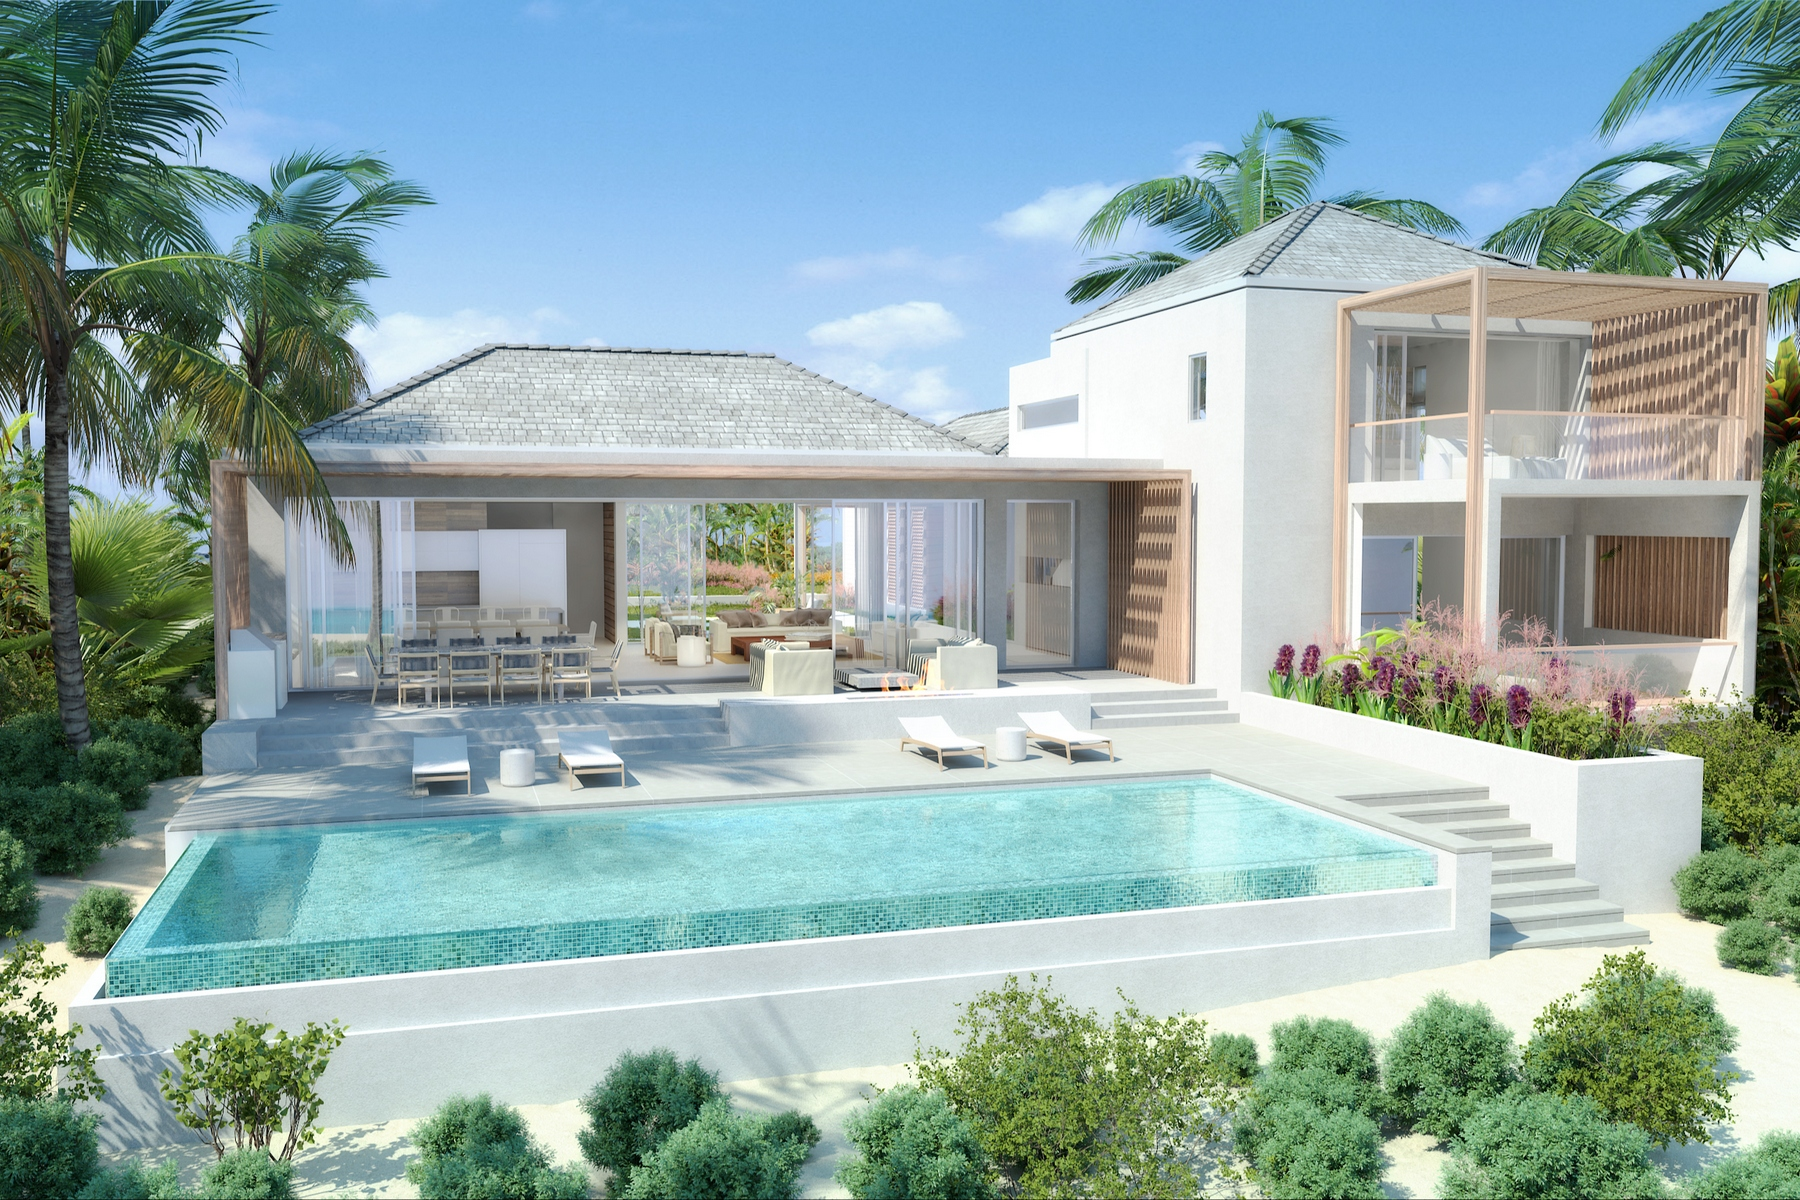 Single Family Home for Sale at BE LONG BAY VILLA - Design One Beachfront Long Bay, Providenciales TCI Turks And Caicos Islands